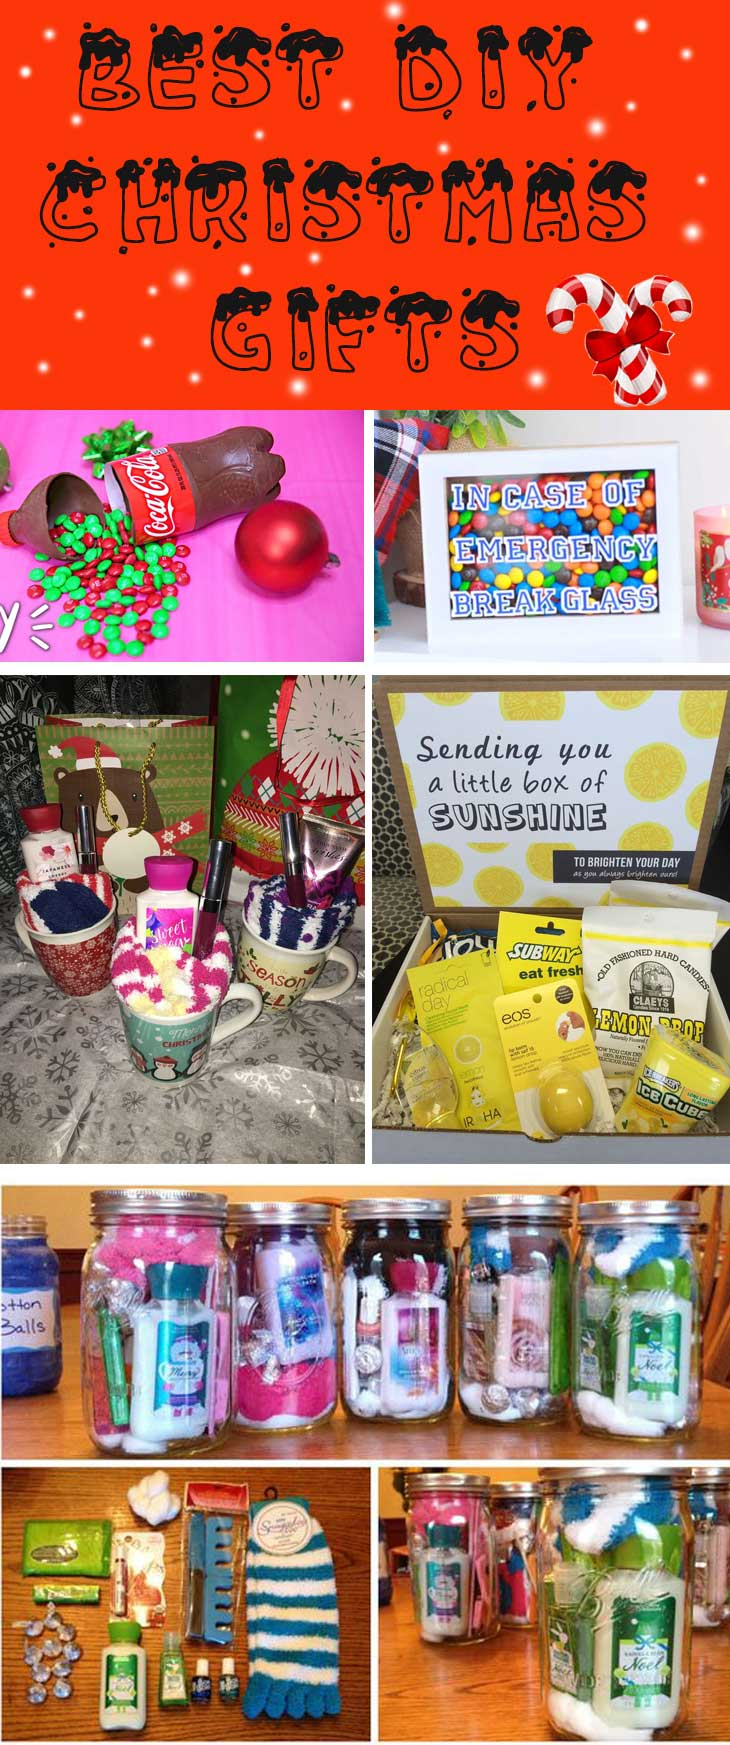 diy christmas gifts to make that will save money whether you want to bake or just get some ideas for a gift basket the ideas here will give you tons